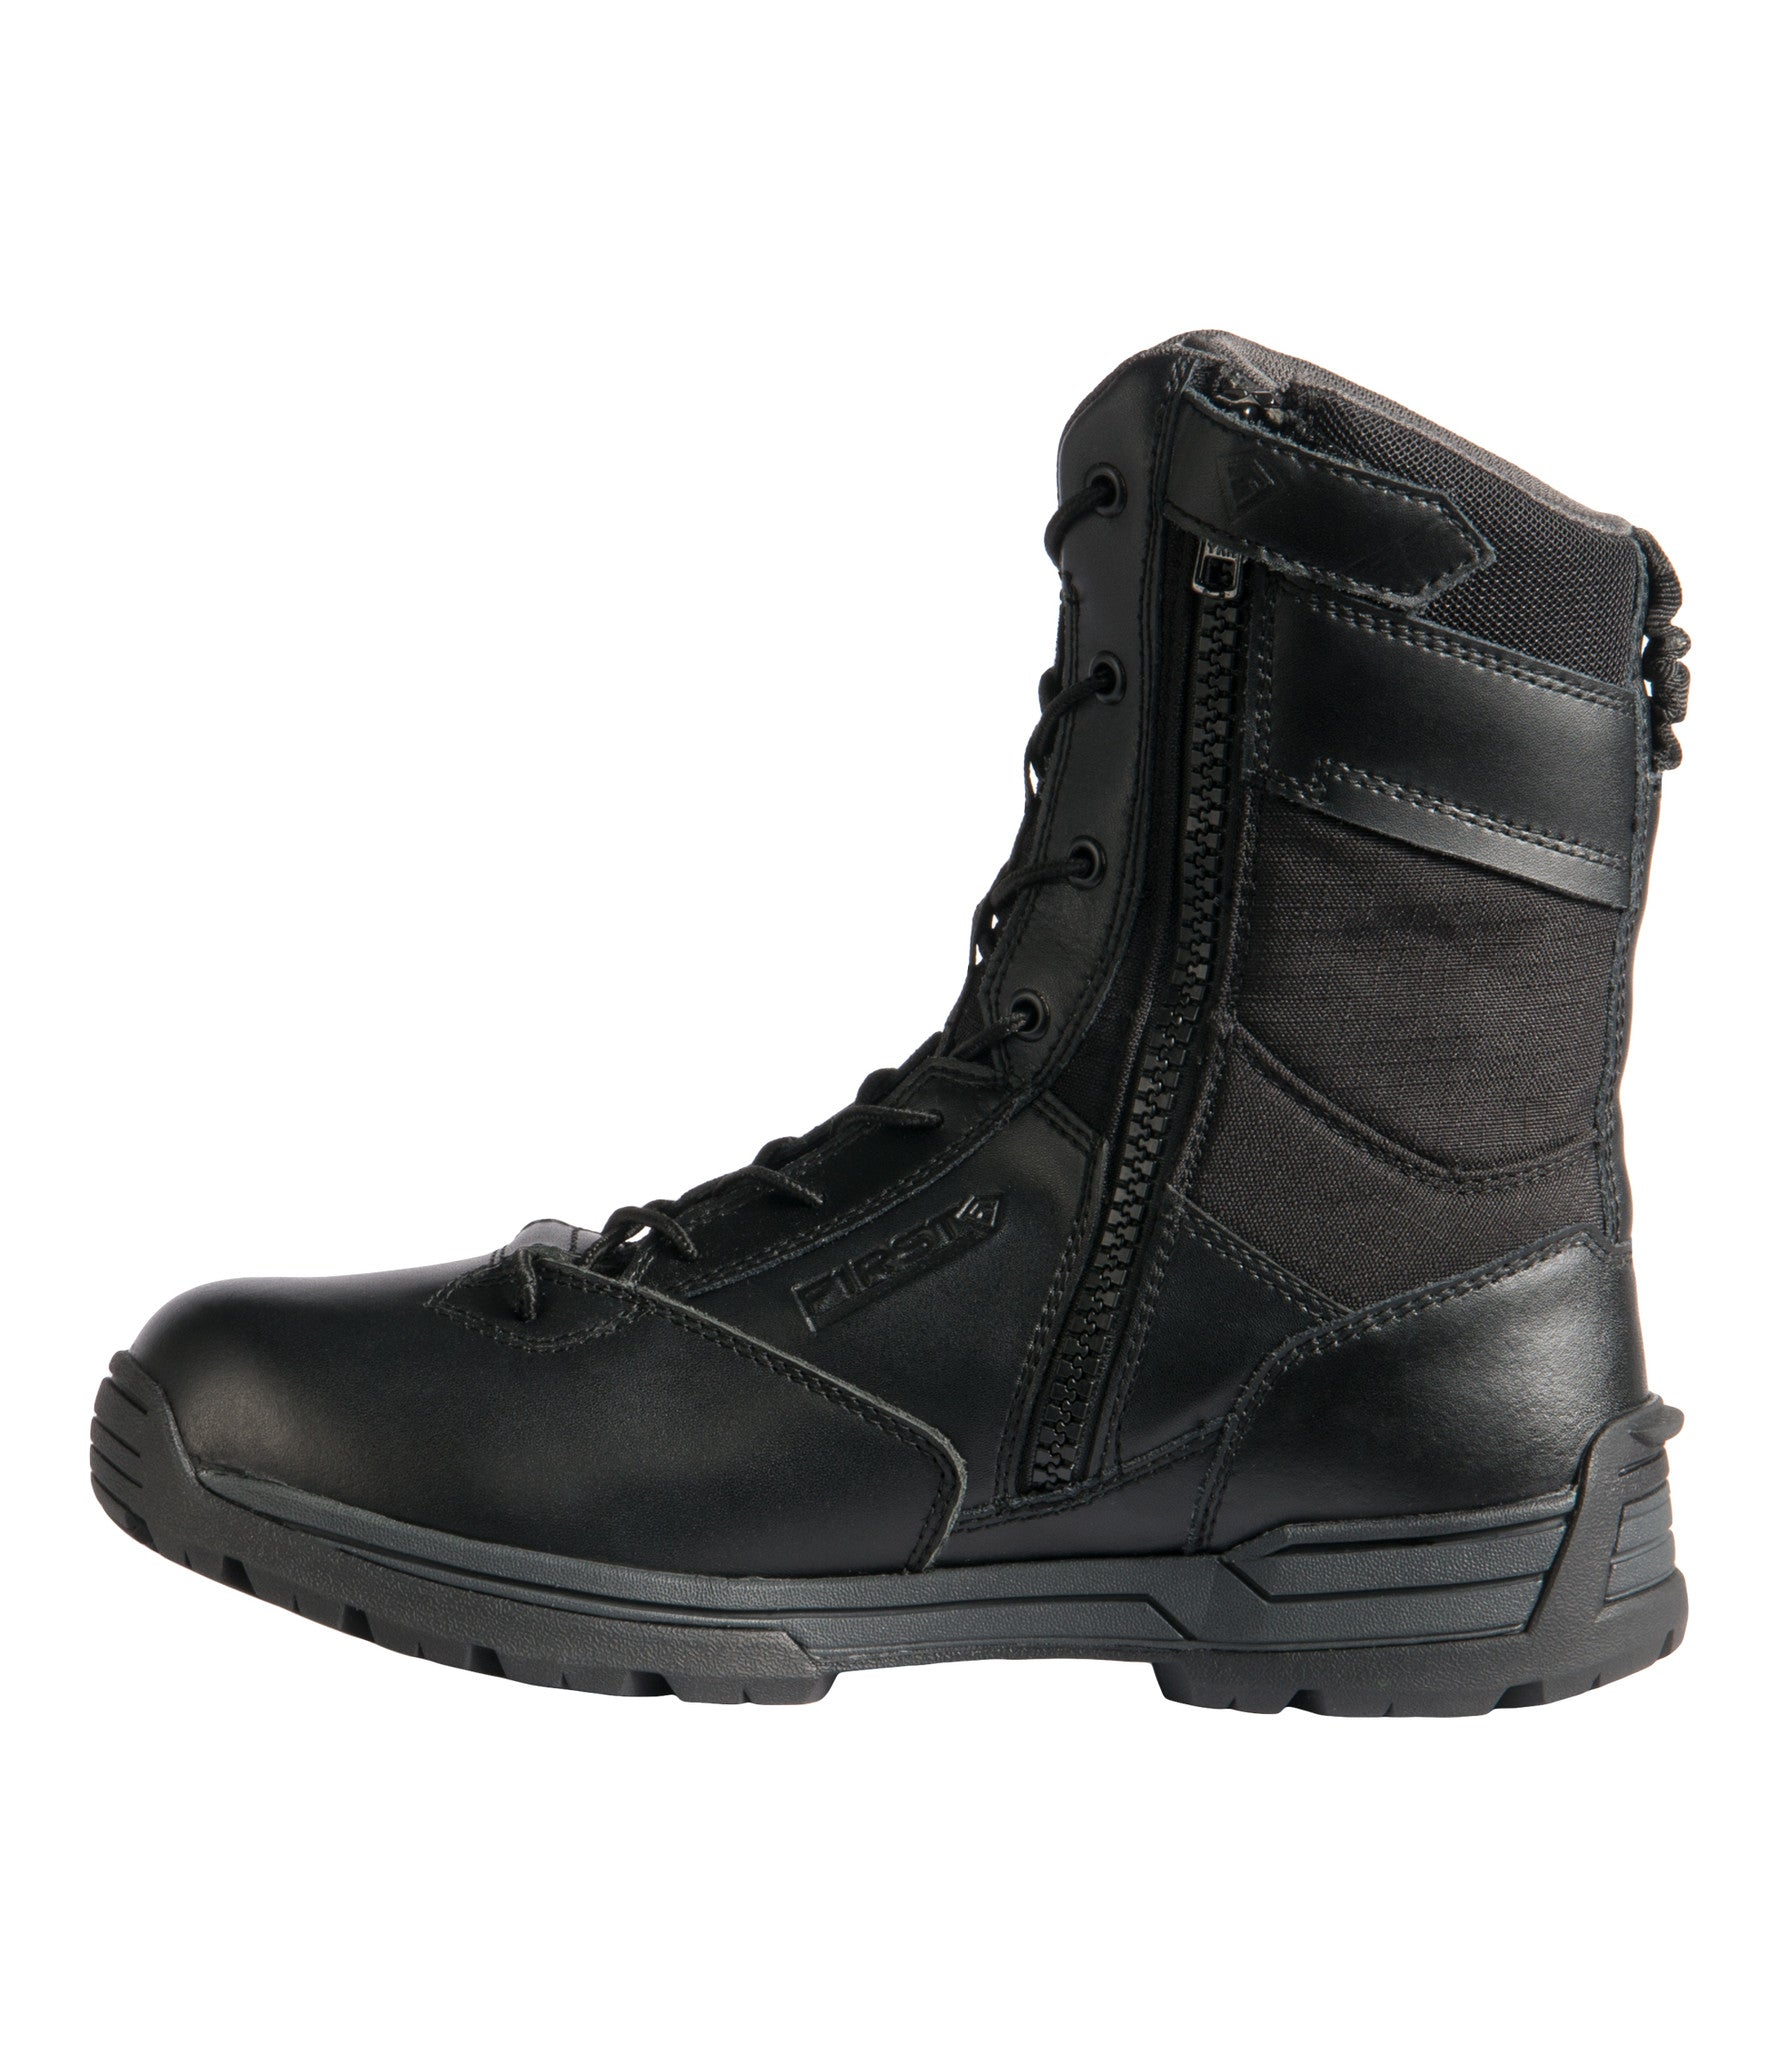 "183b6fd6a8e Men's 8"" Waterproof Side Zip Duty Boot"